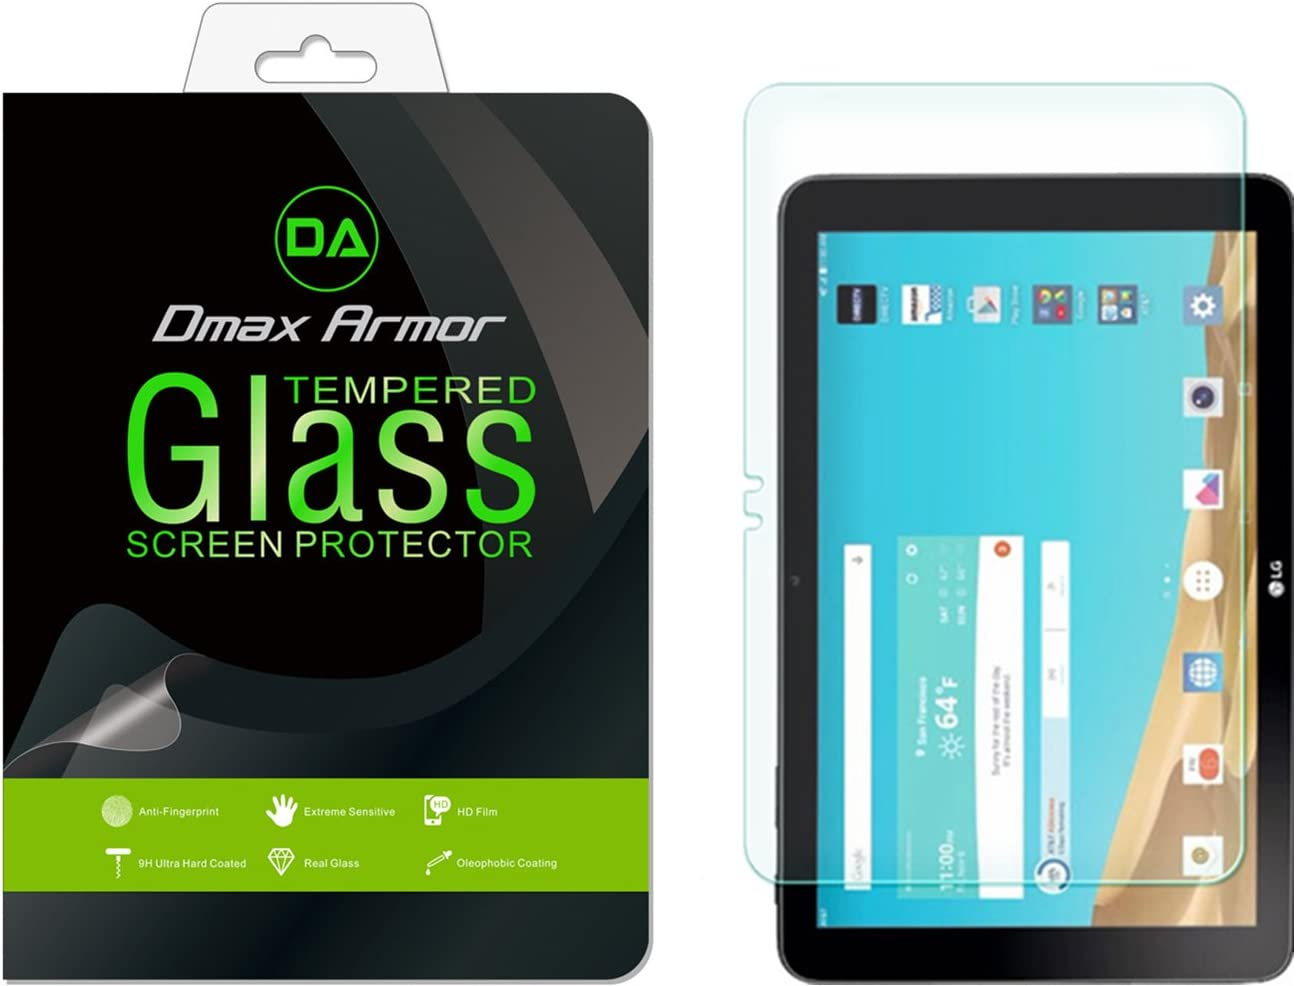 Dmax Armor for LG G Pad X 10.1 Screen Protector, [Tempered Glass] 0.3mm 9H Hardness, Anti-Scratch, Anti-Fingerprint, Bubble Free, Ultra-Clear